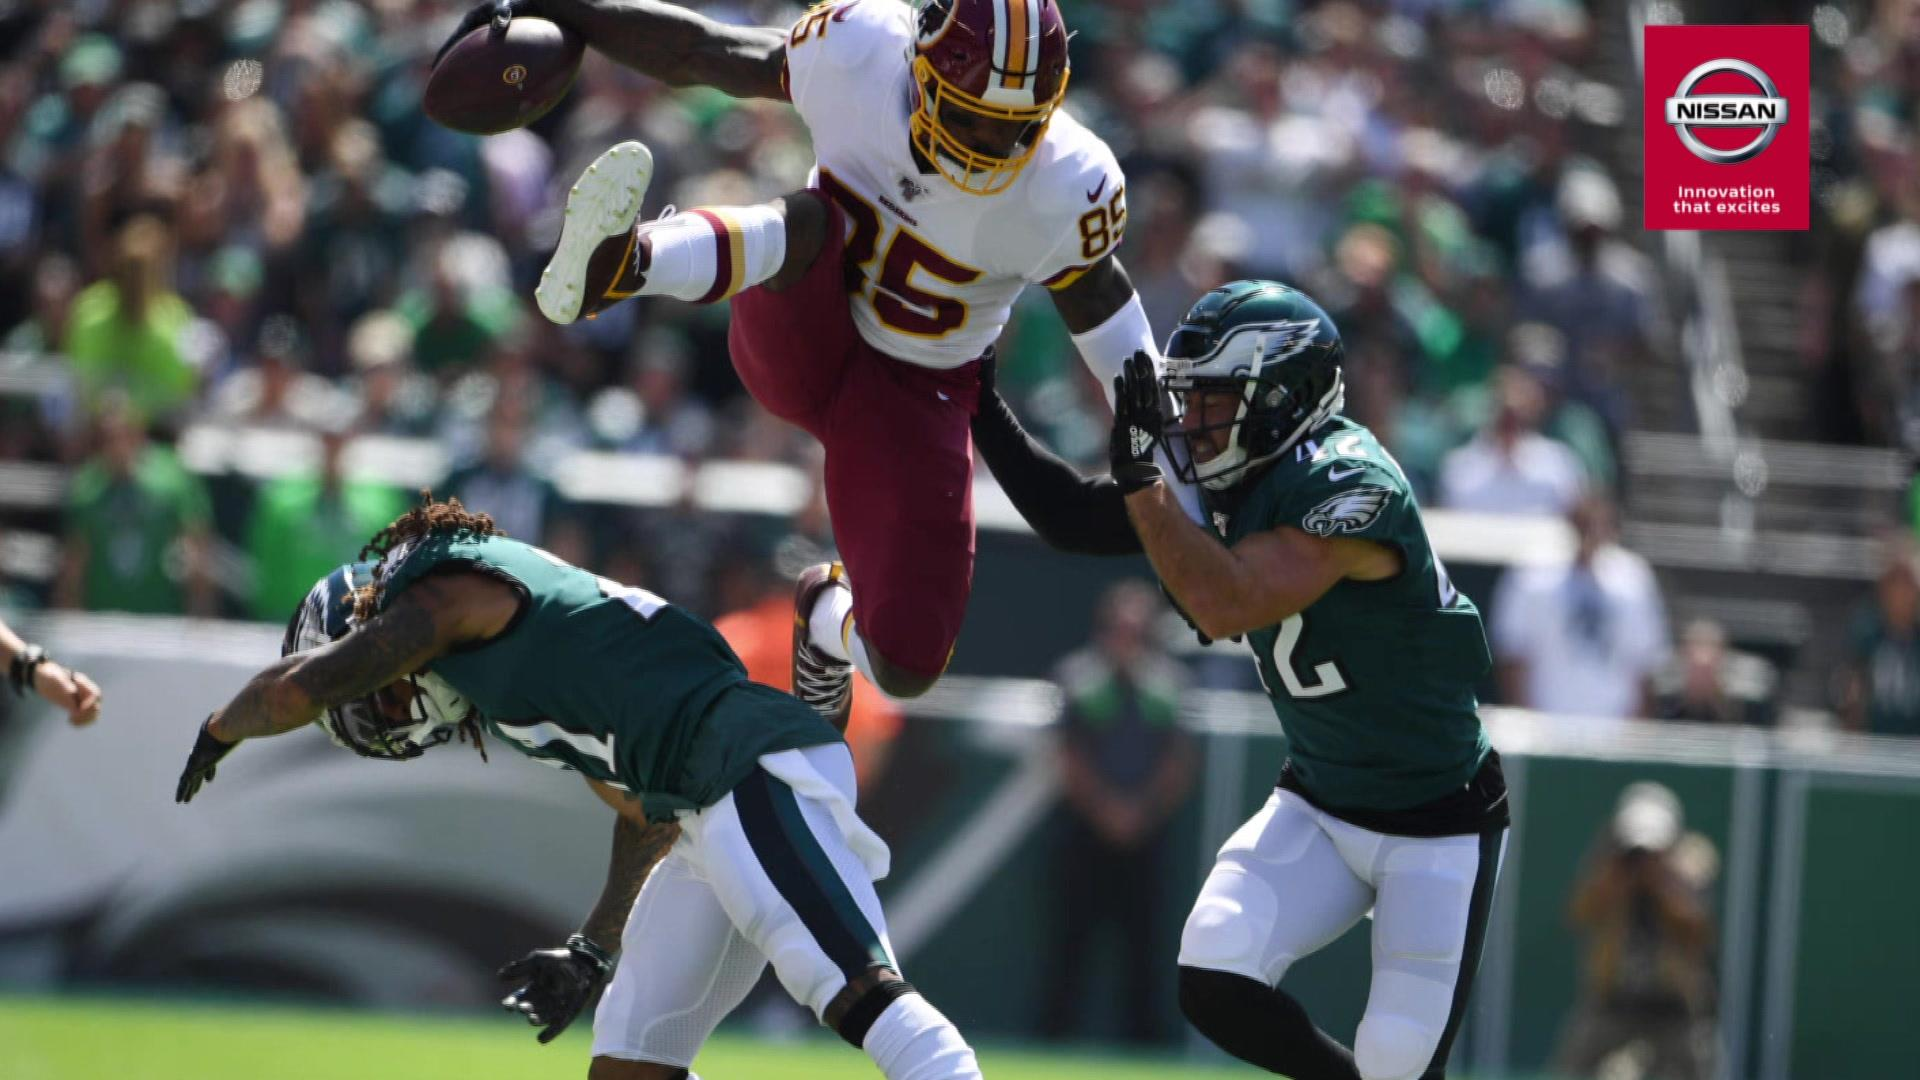 Doug Pederson identifies issues causing slow starts for Eagles